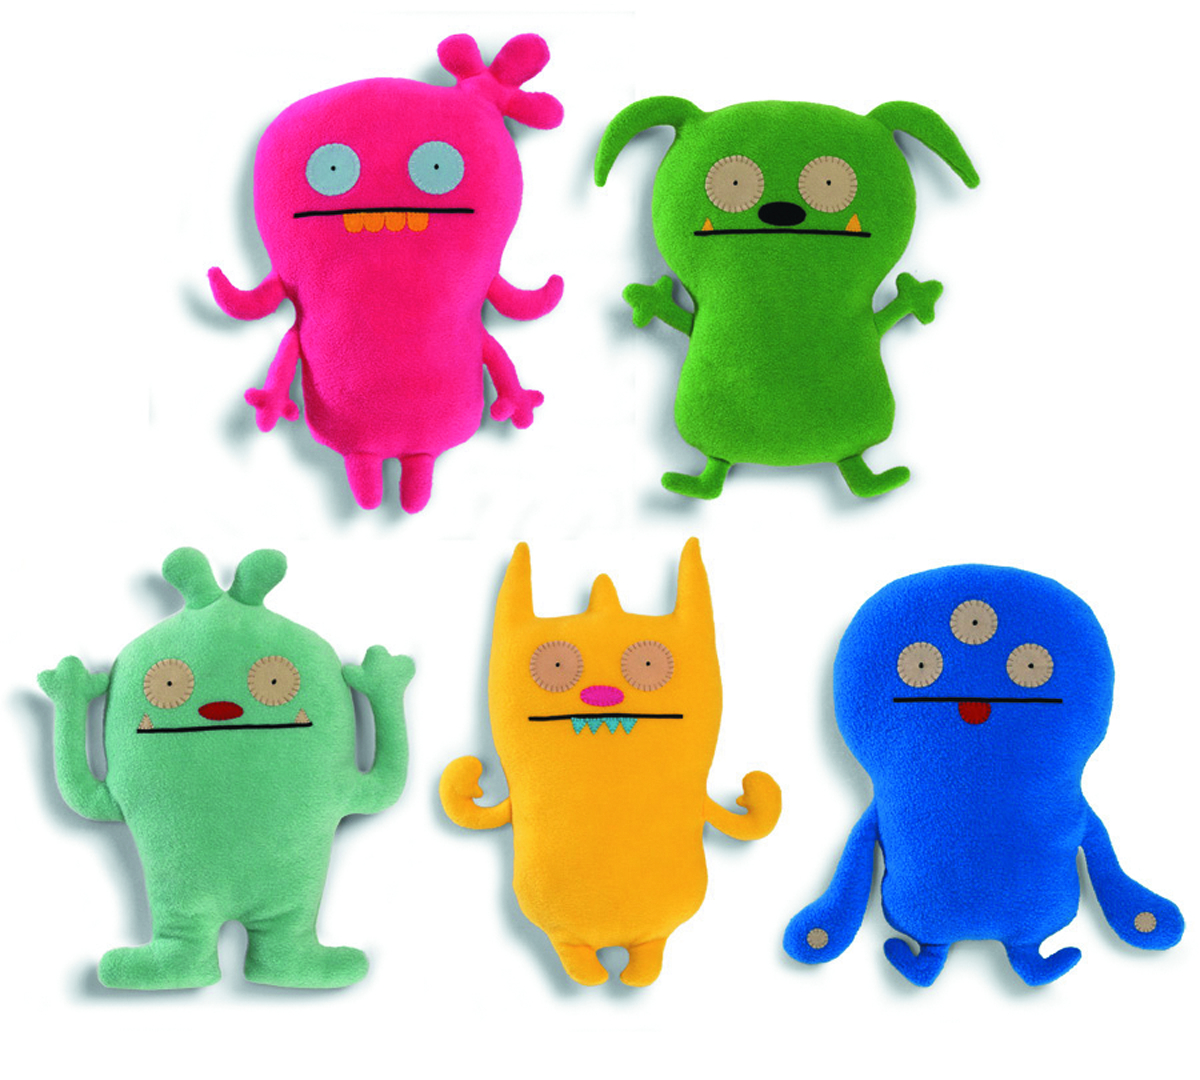 UGLYDOLL 2013 INTRO CLASSIC 13-IN PLUSH ASST